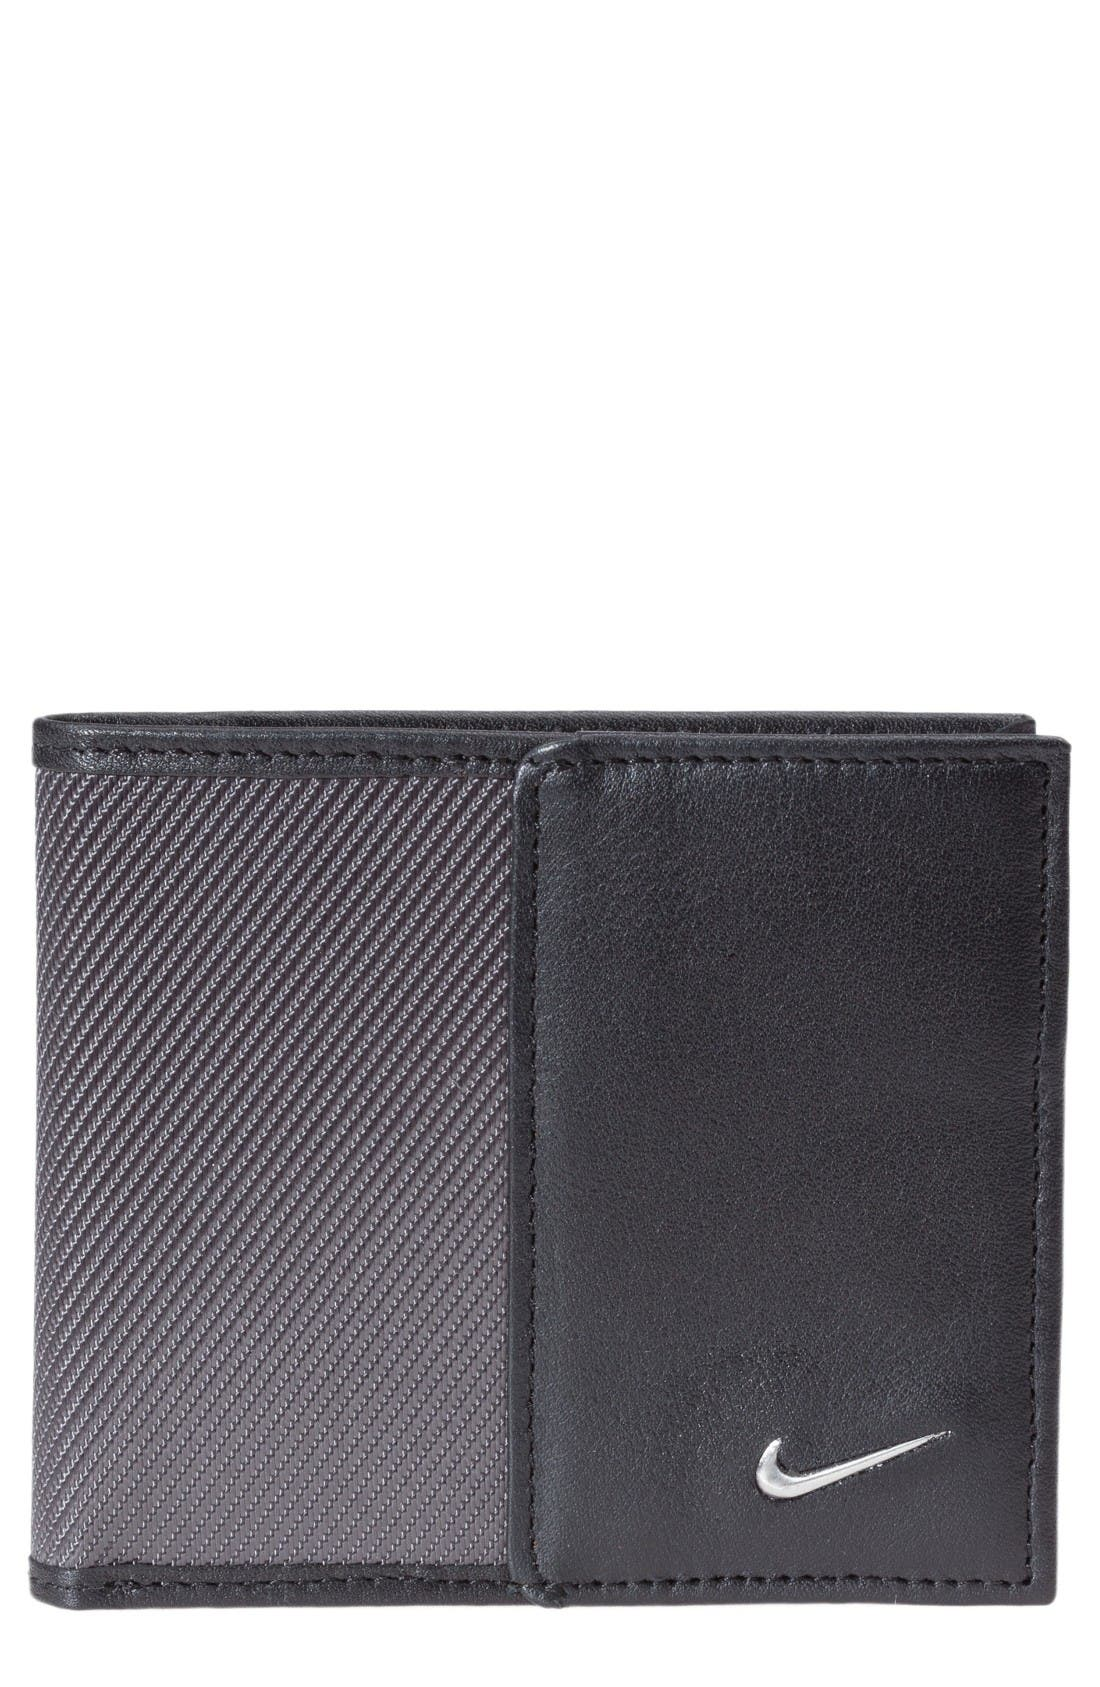 NIKE Leather & Tech Twill Money Clip Card